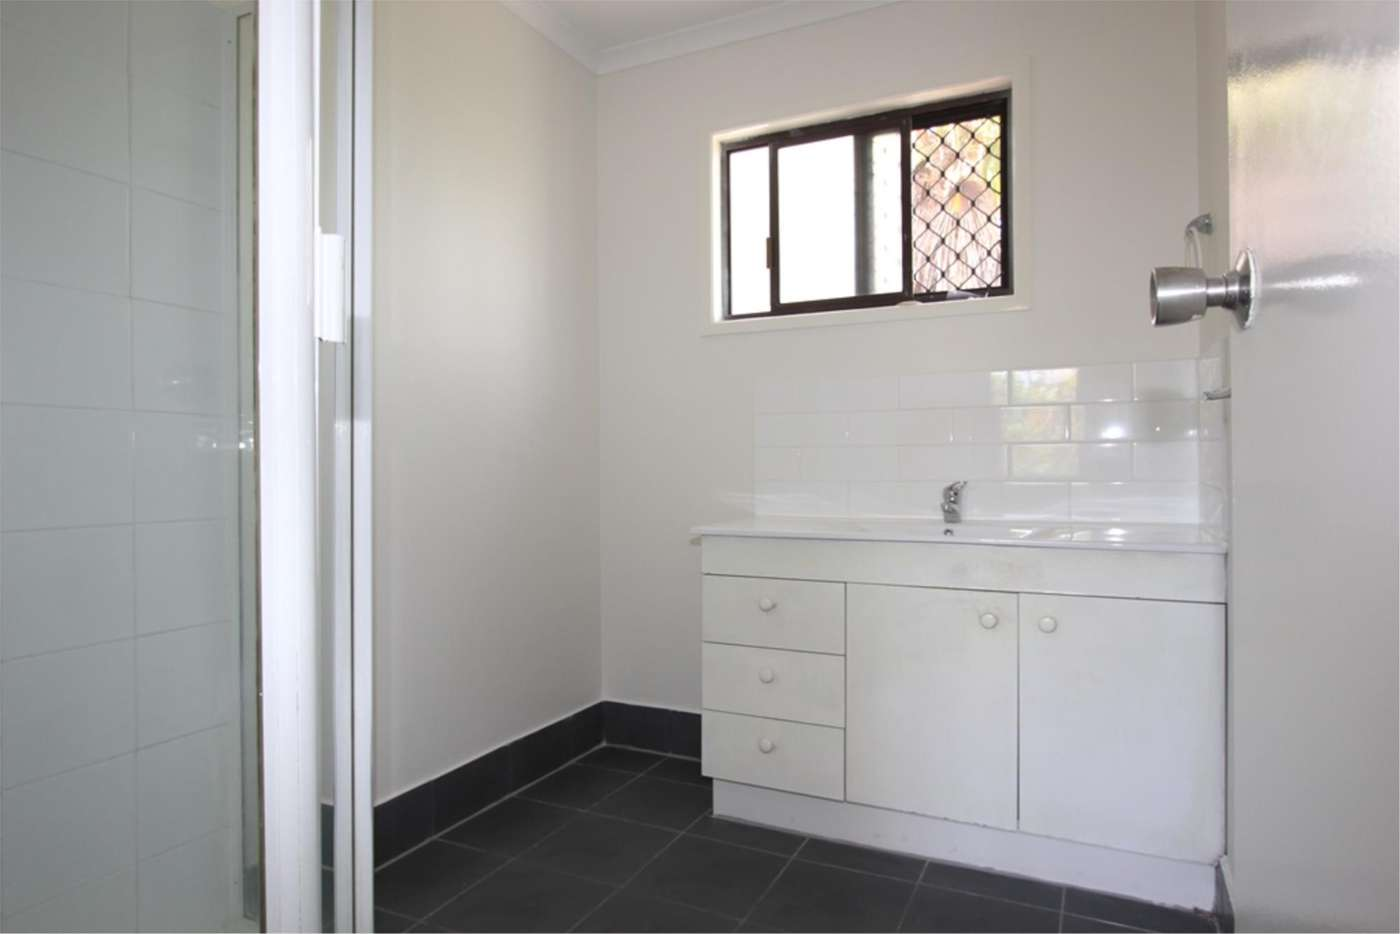 Seventh view of Homely house listing, 21 Olympia St, Marsden QLD 4132